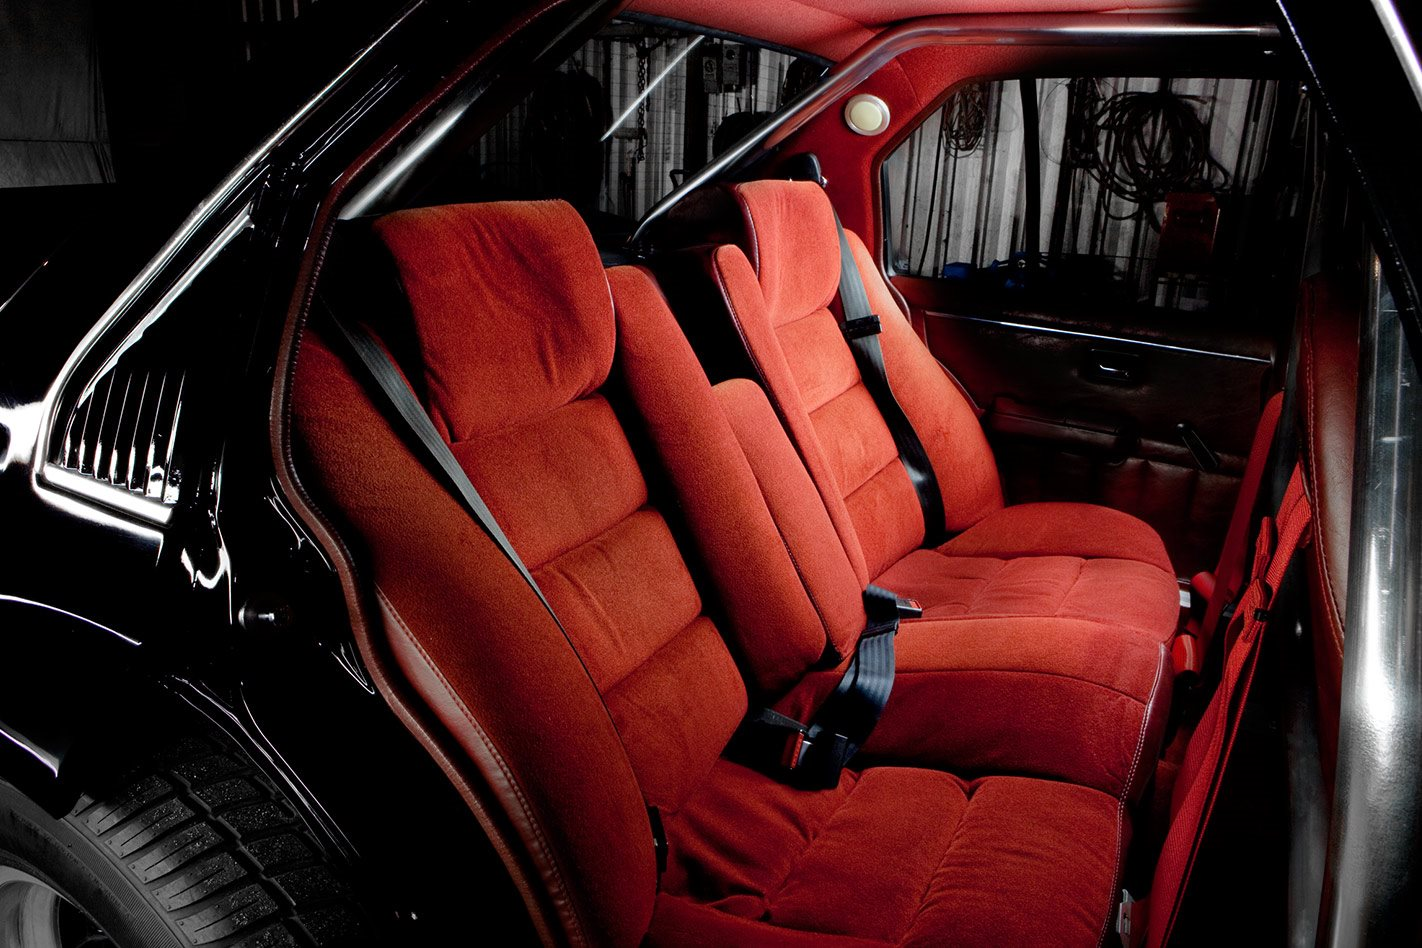 HDT Brock replica rear seats